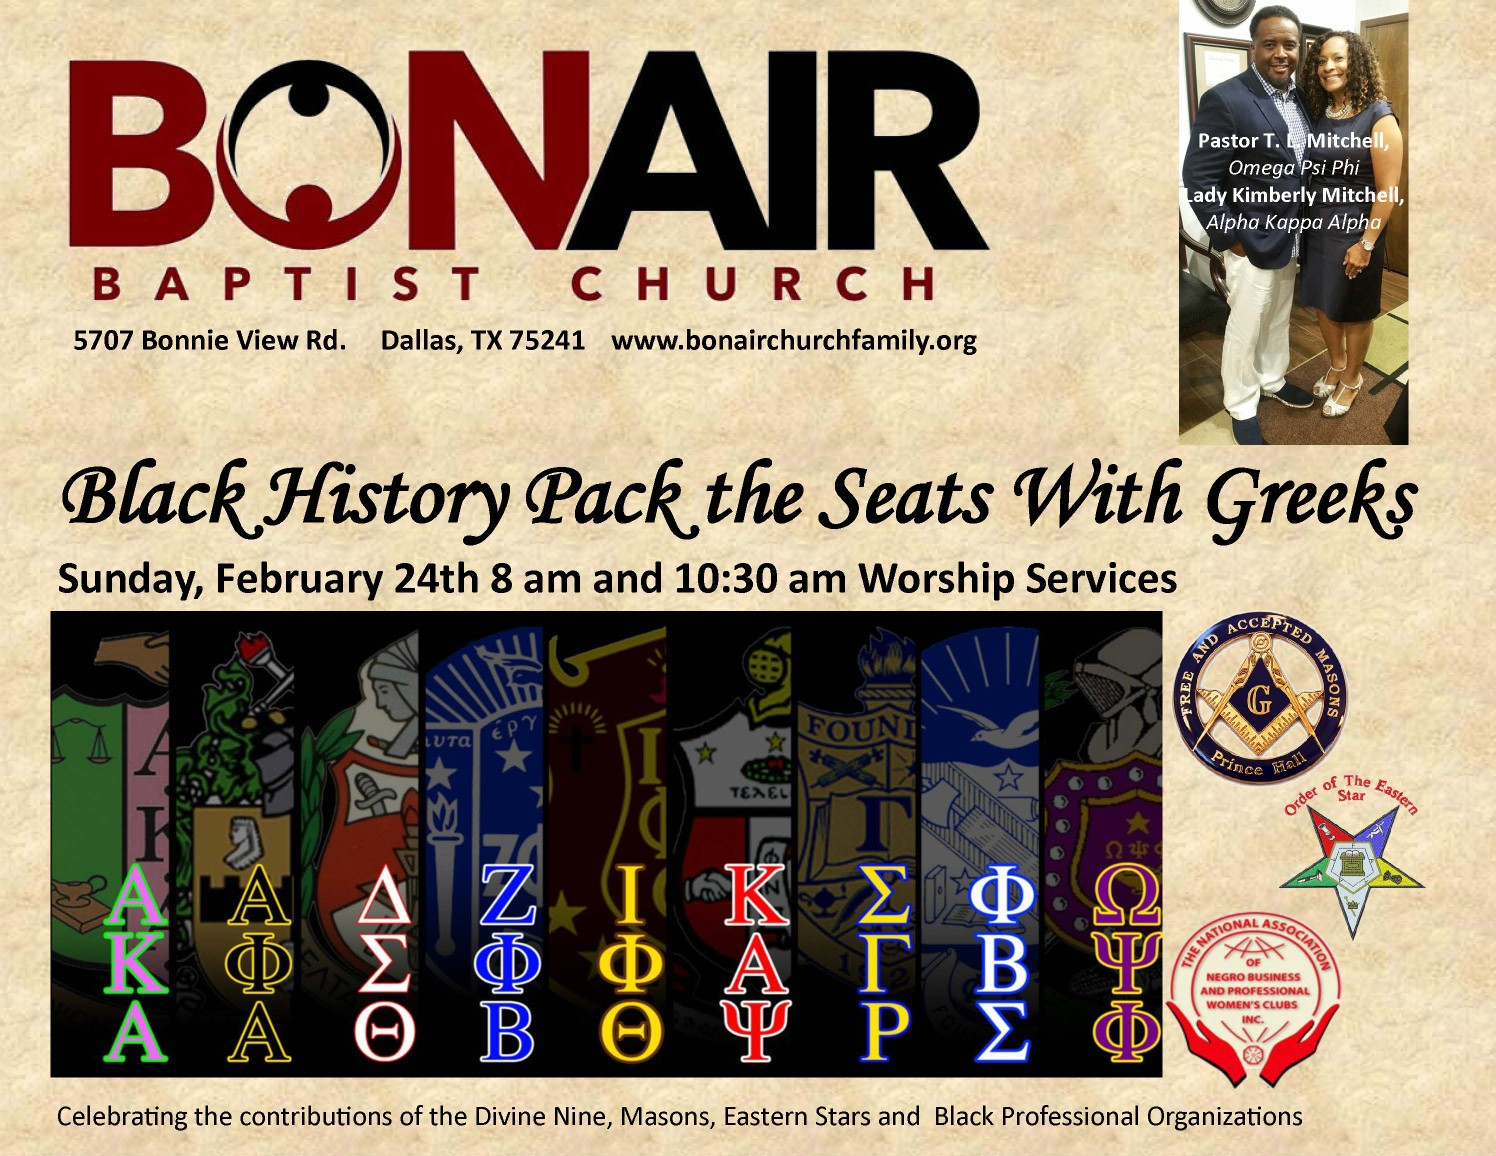 BLACK HISTORY PACK THE SEATS WITH GREEKS: FEBRUARY 24, 2019